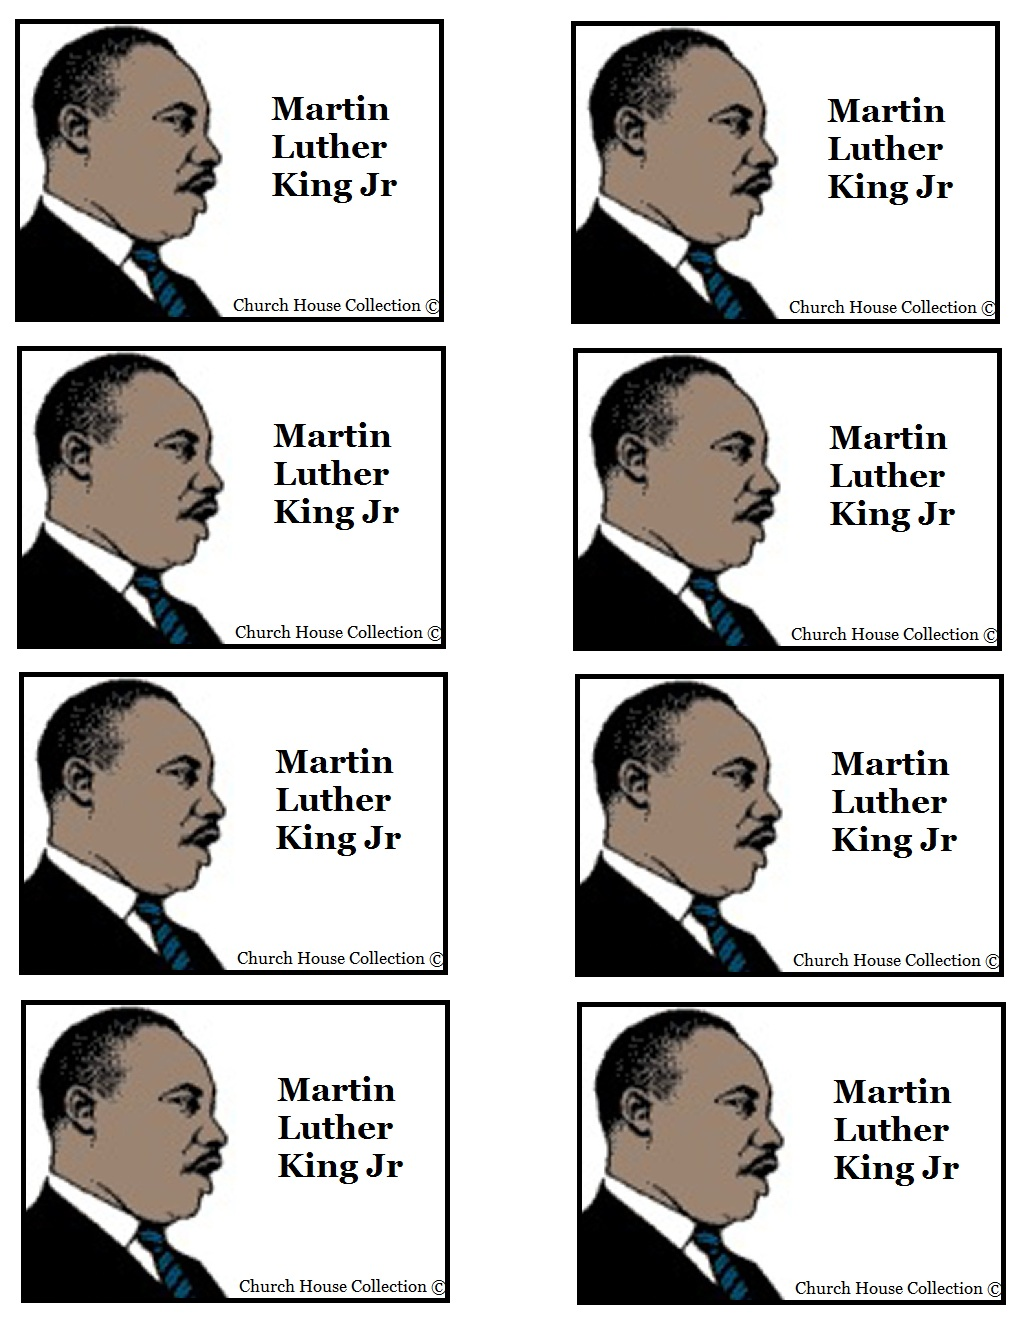 martin luther king jr essays martin luther king jr study resources martin luther king jr essays jpg martin luther king jr study resources martin luther king jr essays jpg